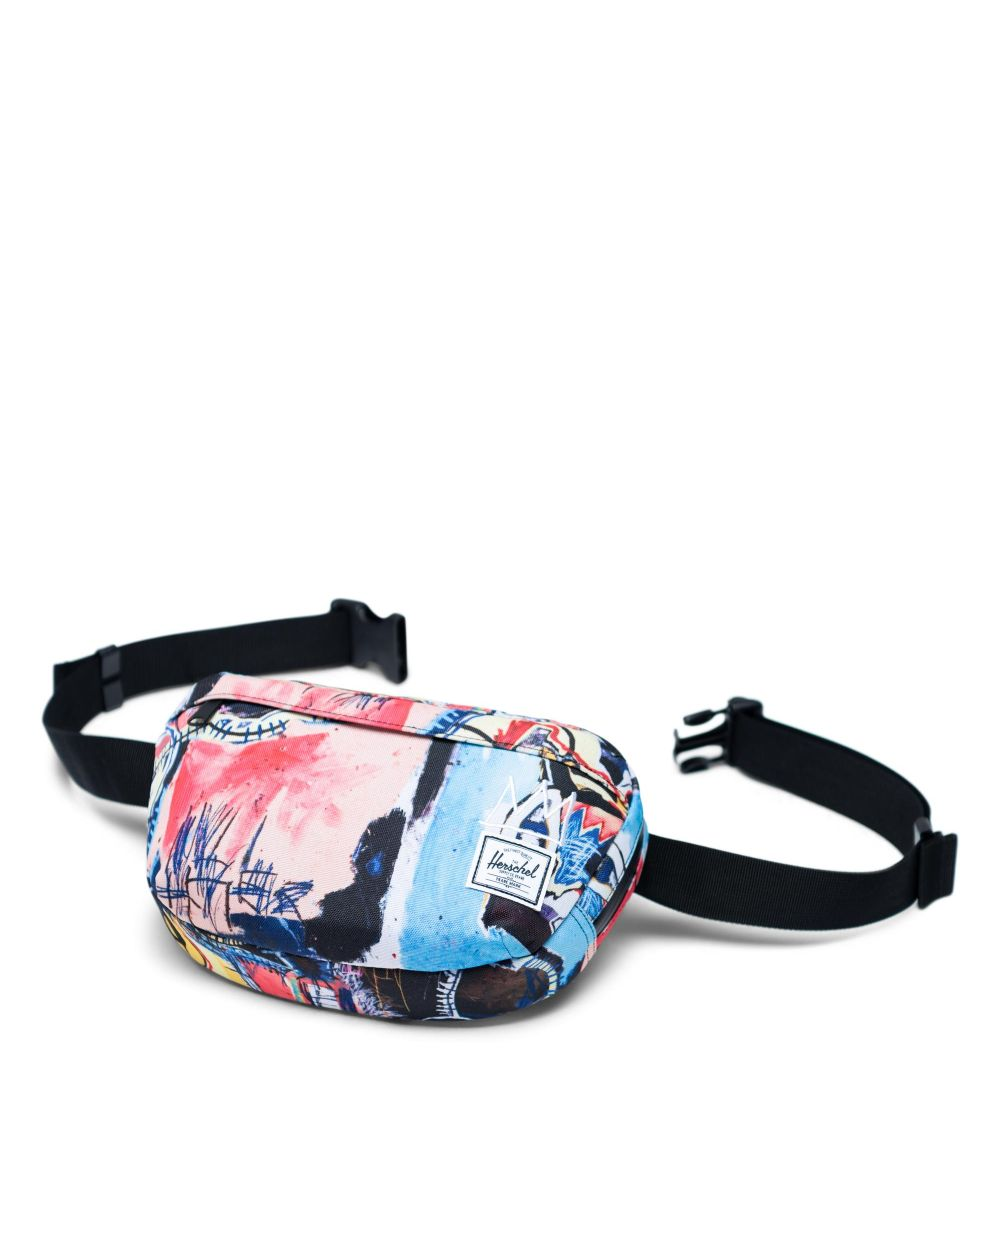 NINETEEN HIP PACK - BASQUIAT